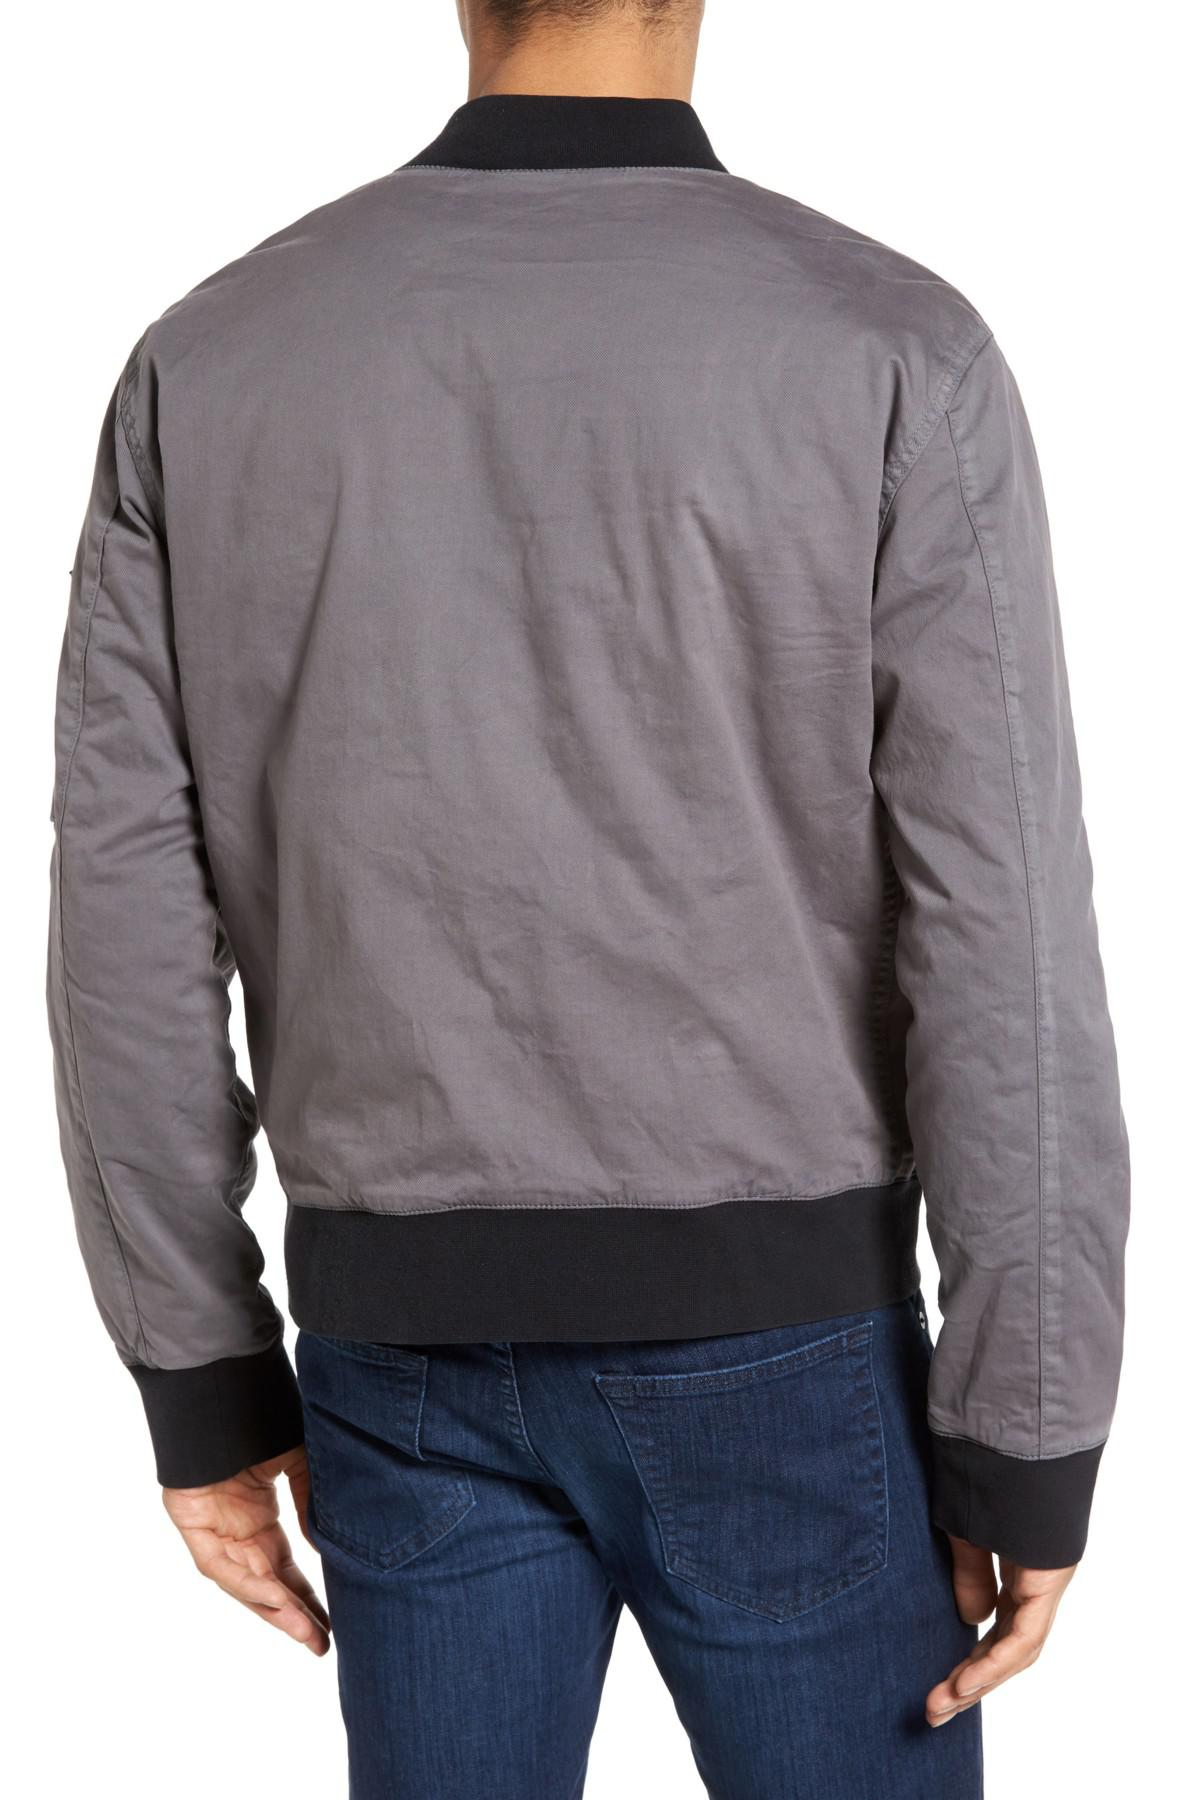 a8237127b Lyst - Hudson Jeans Knox Twill Bomber Jacket for Men